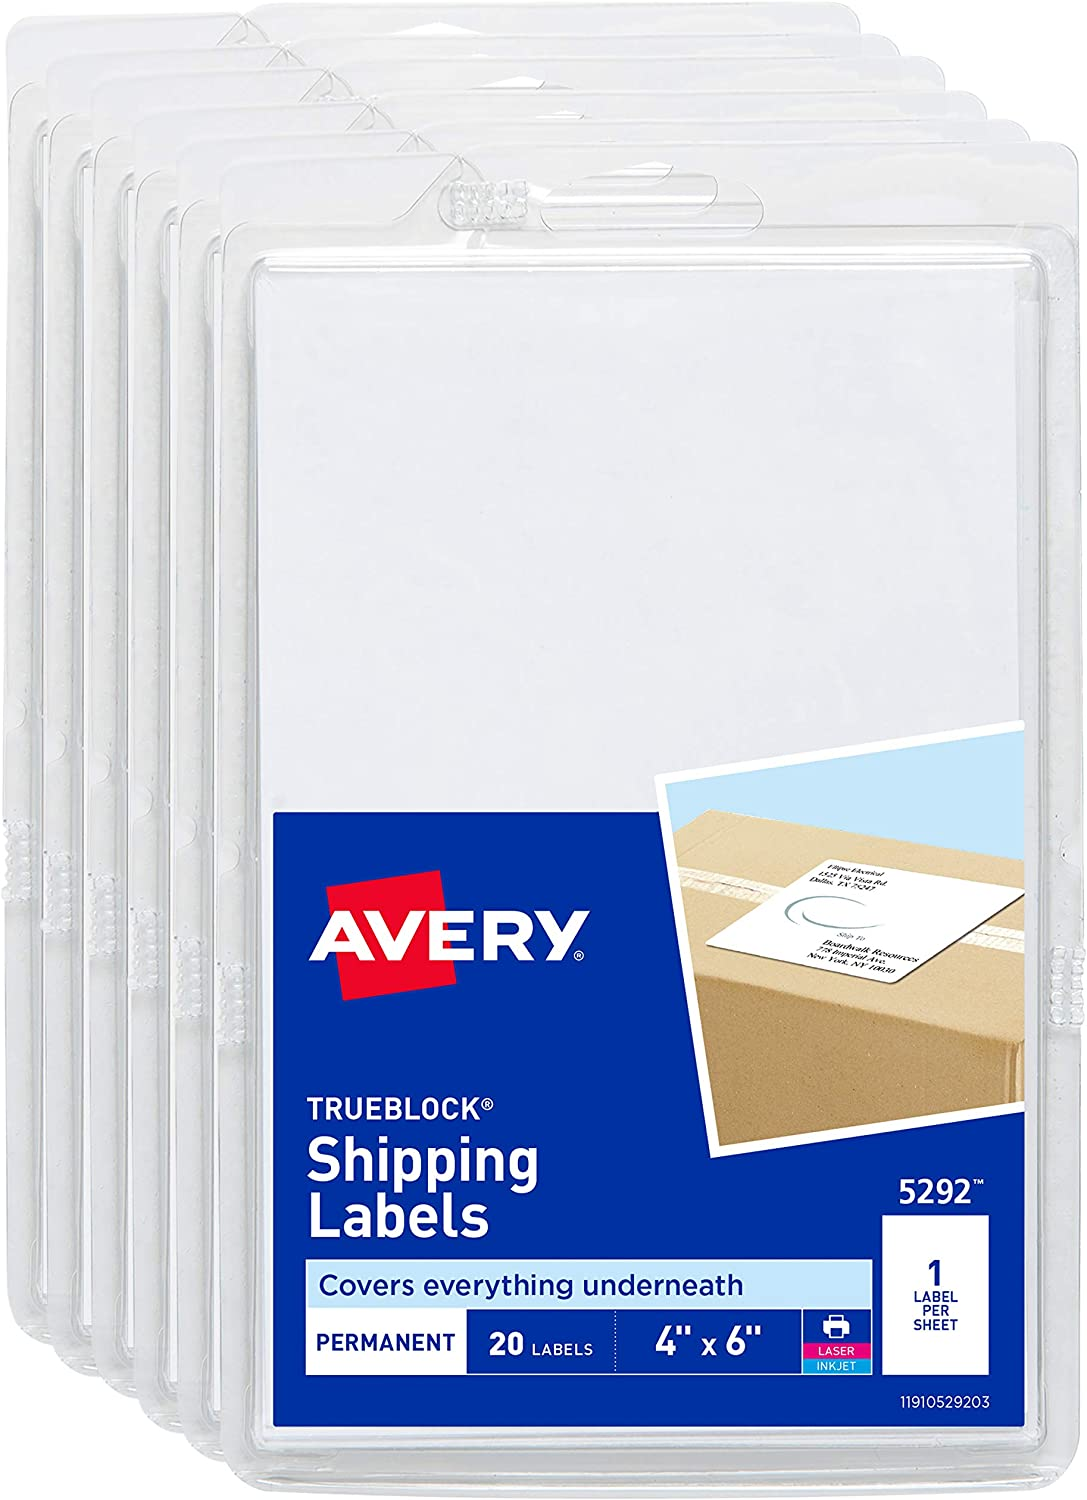 Store Avery Shipping Labels Ranking TOP17 for Laser TrueBlock Printers Technology